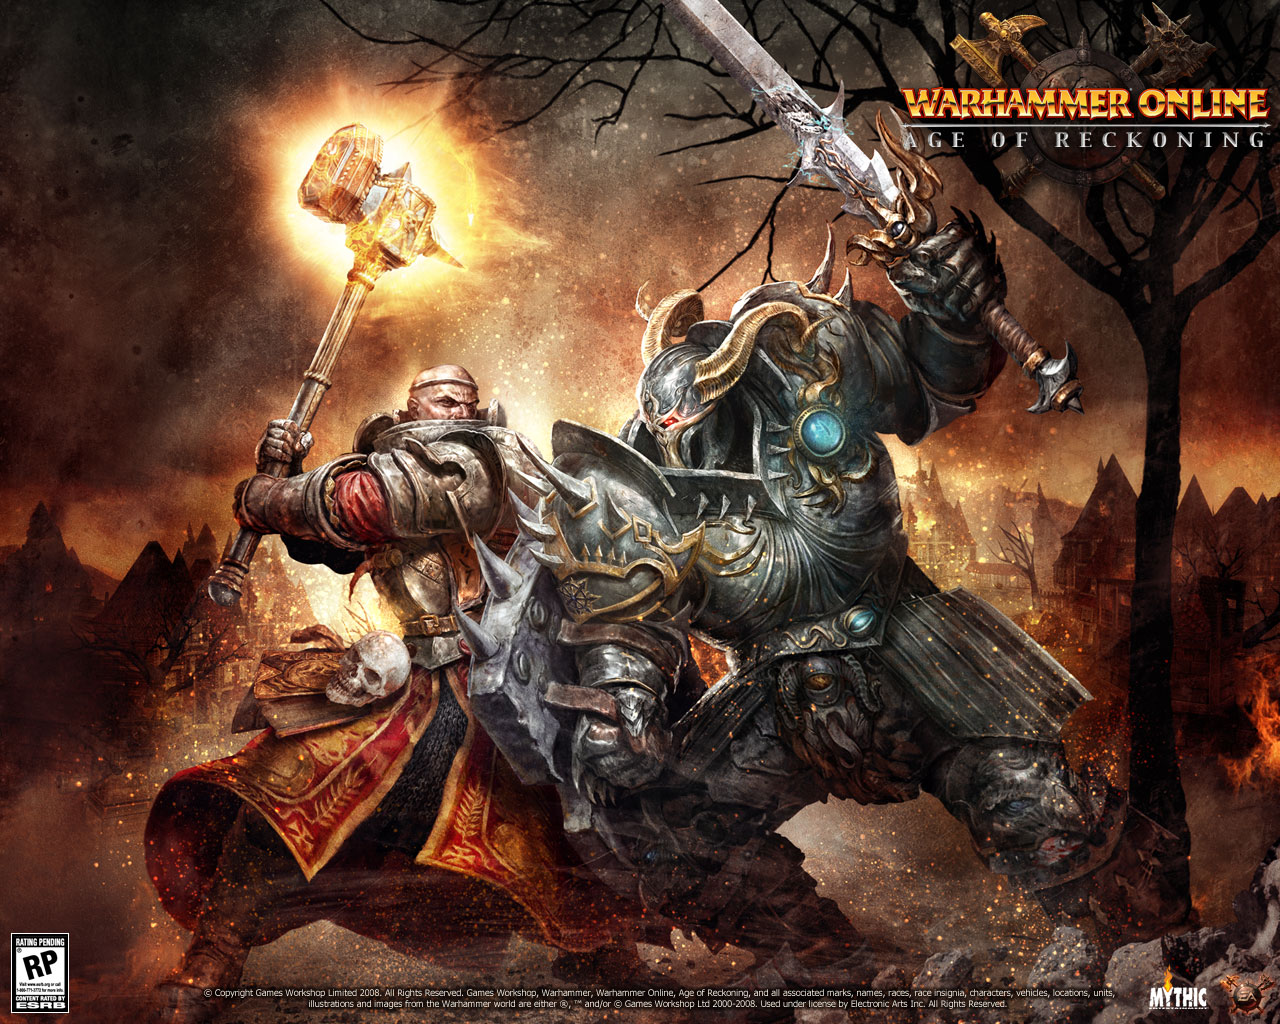 wallpaper mythical themes. Wallpaper de Warhammer Online: Age of Reckoning